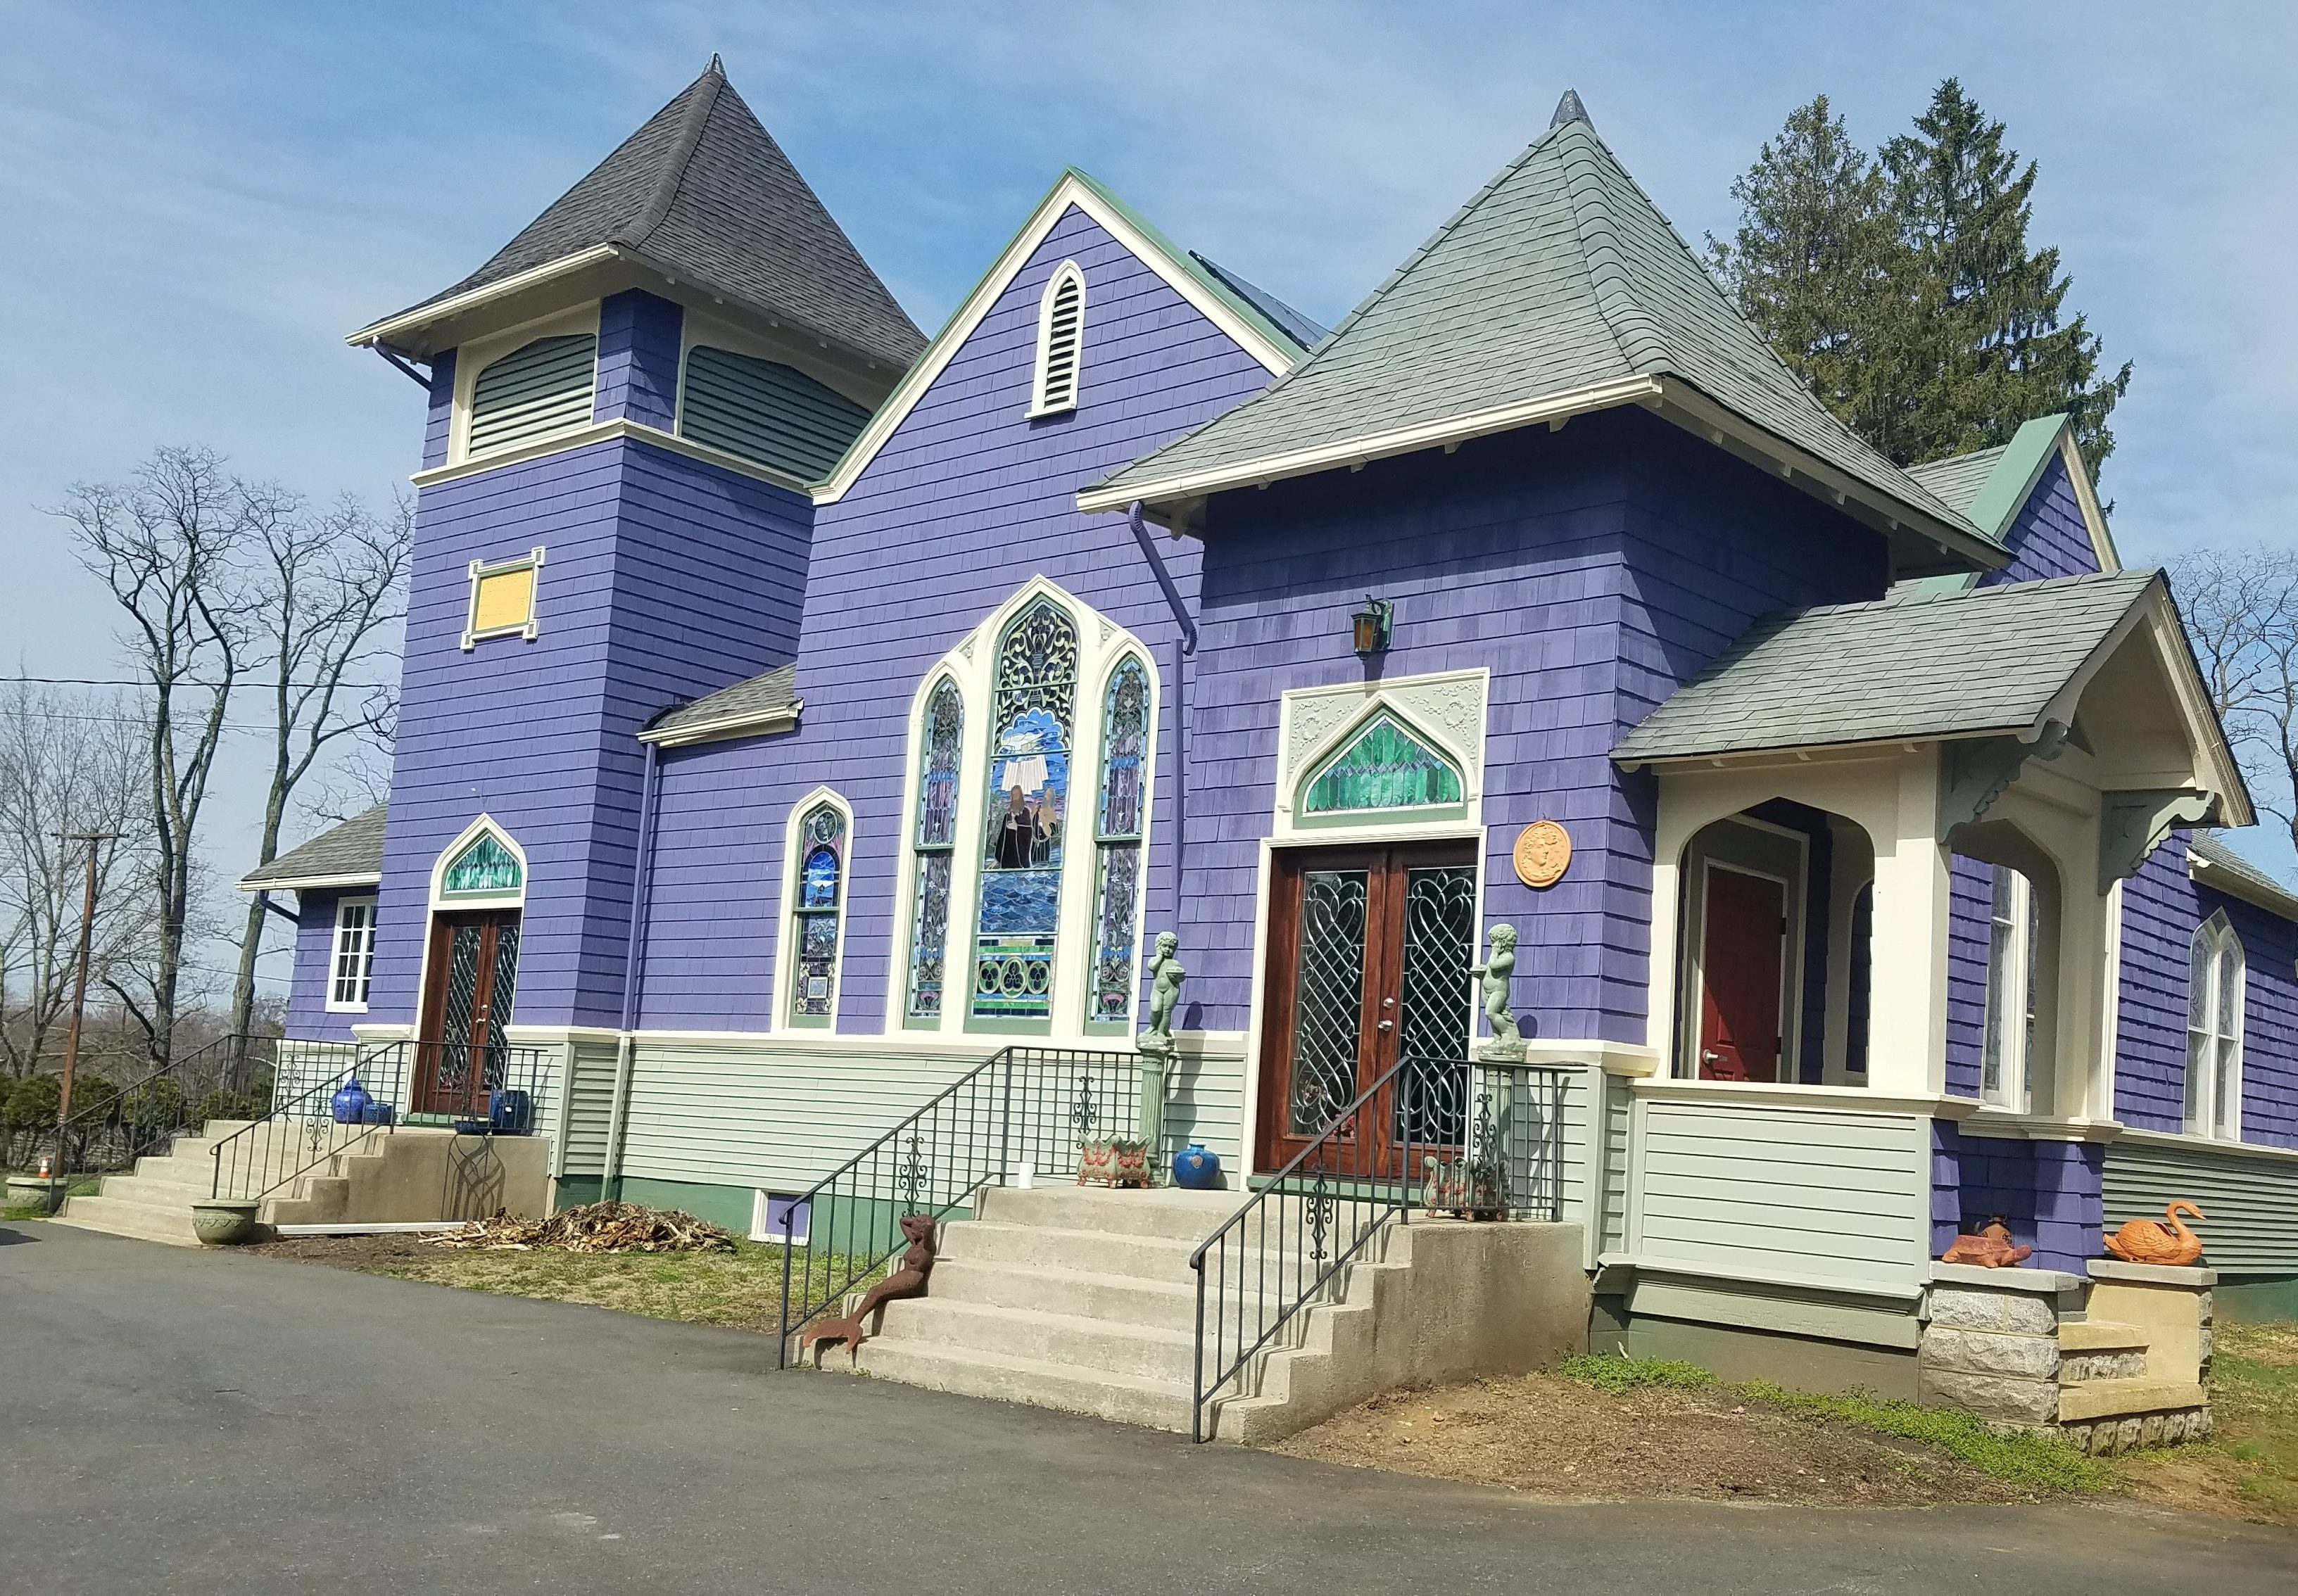 Windows and Doors on a church remodeled into a home